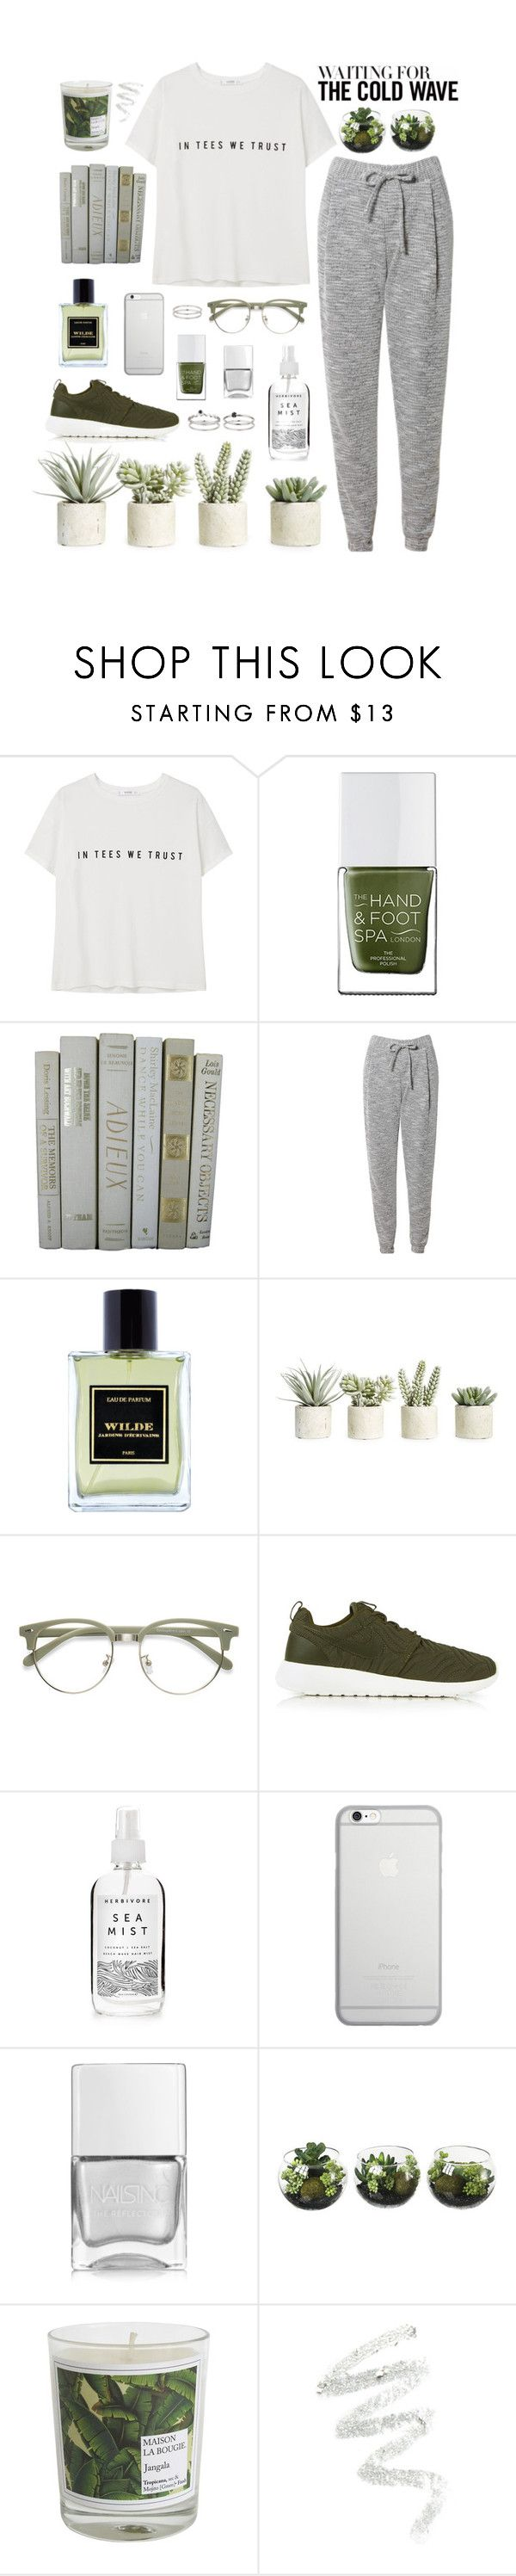 """""""i never needed you like i do right now"""" by fernweeh on Polyvore featuring moda, MANGO, Related, Jardins D'Écrivains, Allstate Floral, NIKE, Herbivore, Native Union, Nails Inc. i Maison La Bougie"""